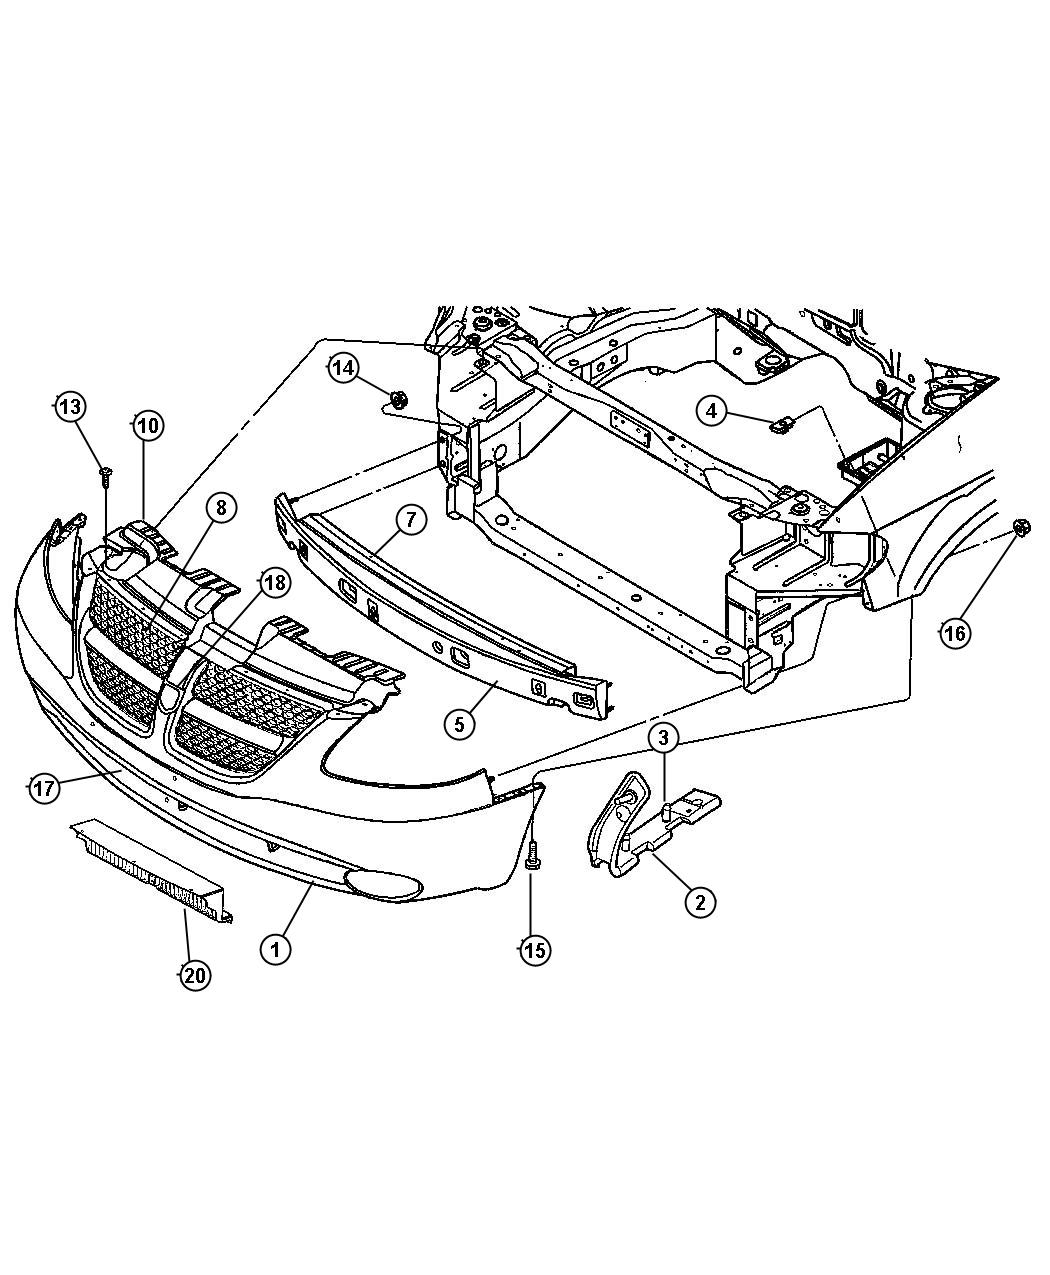 Chrysler town and country suspension parts